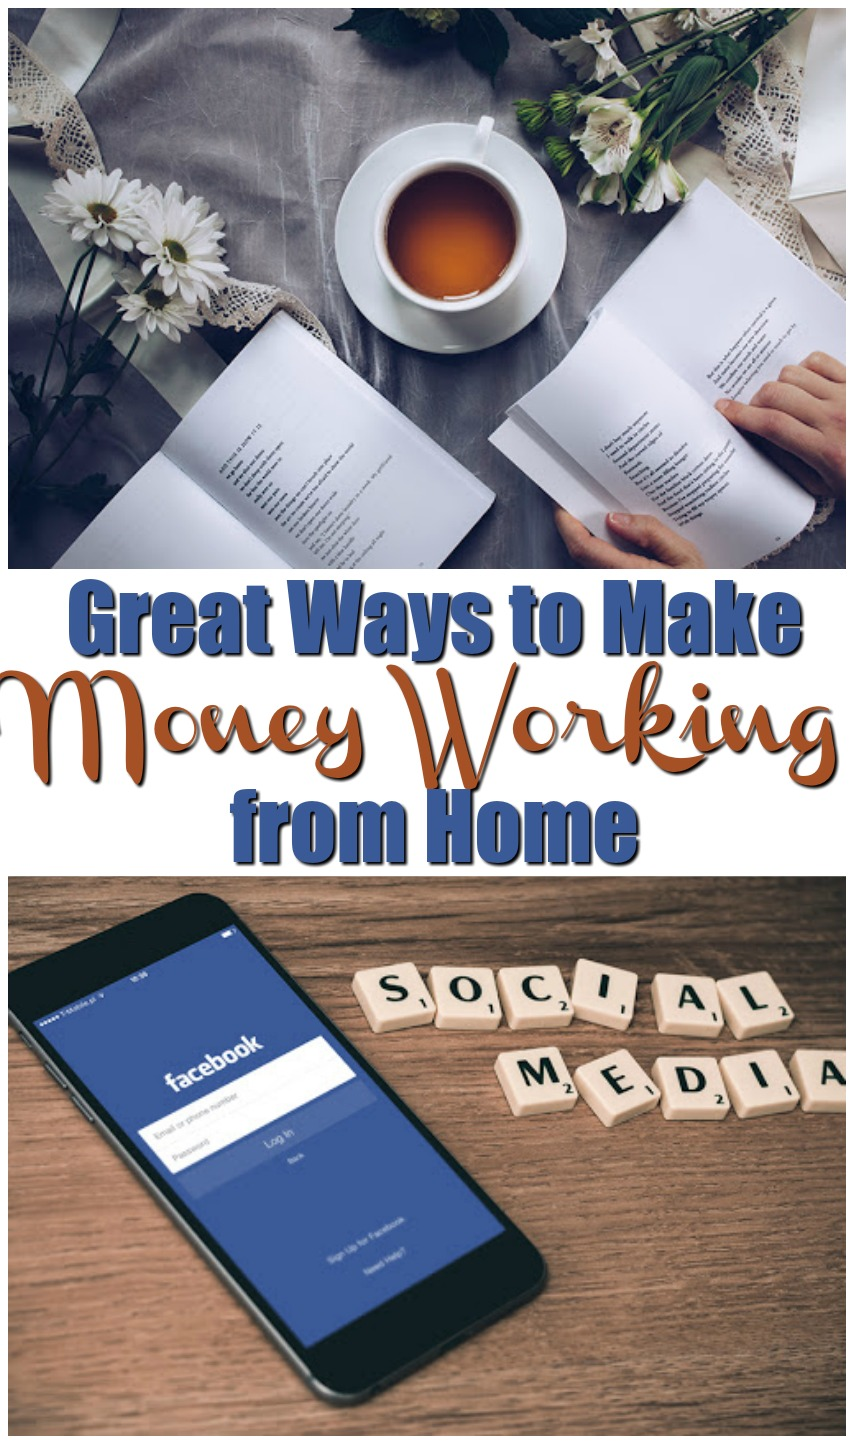 Great Ways to Make Money Working from Home